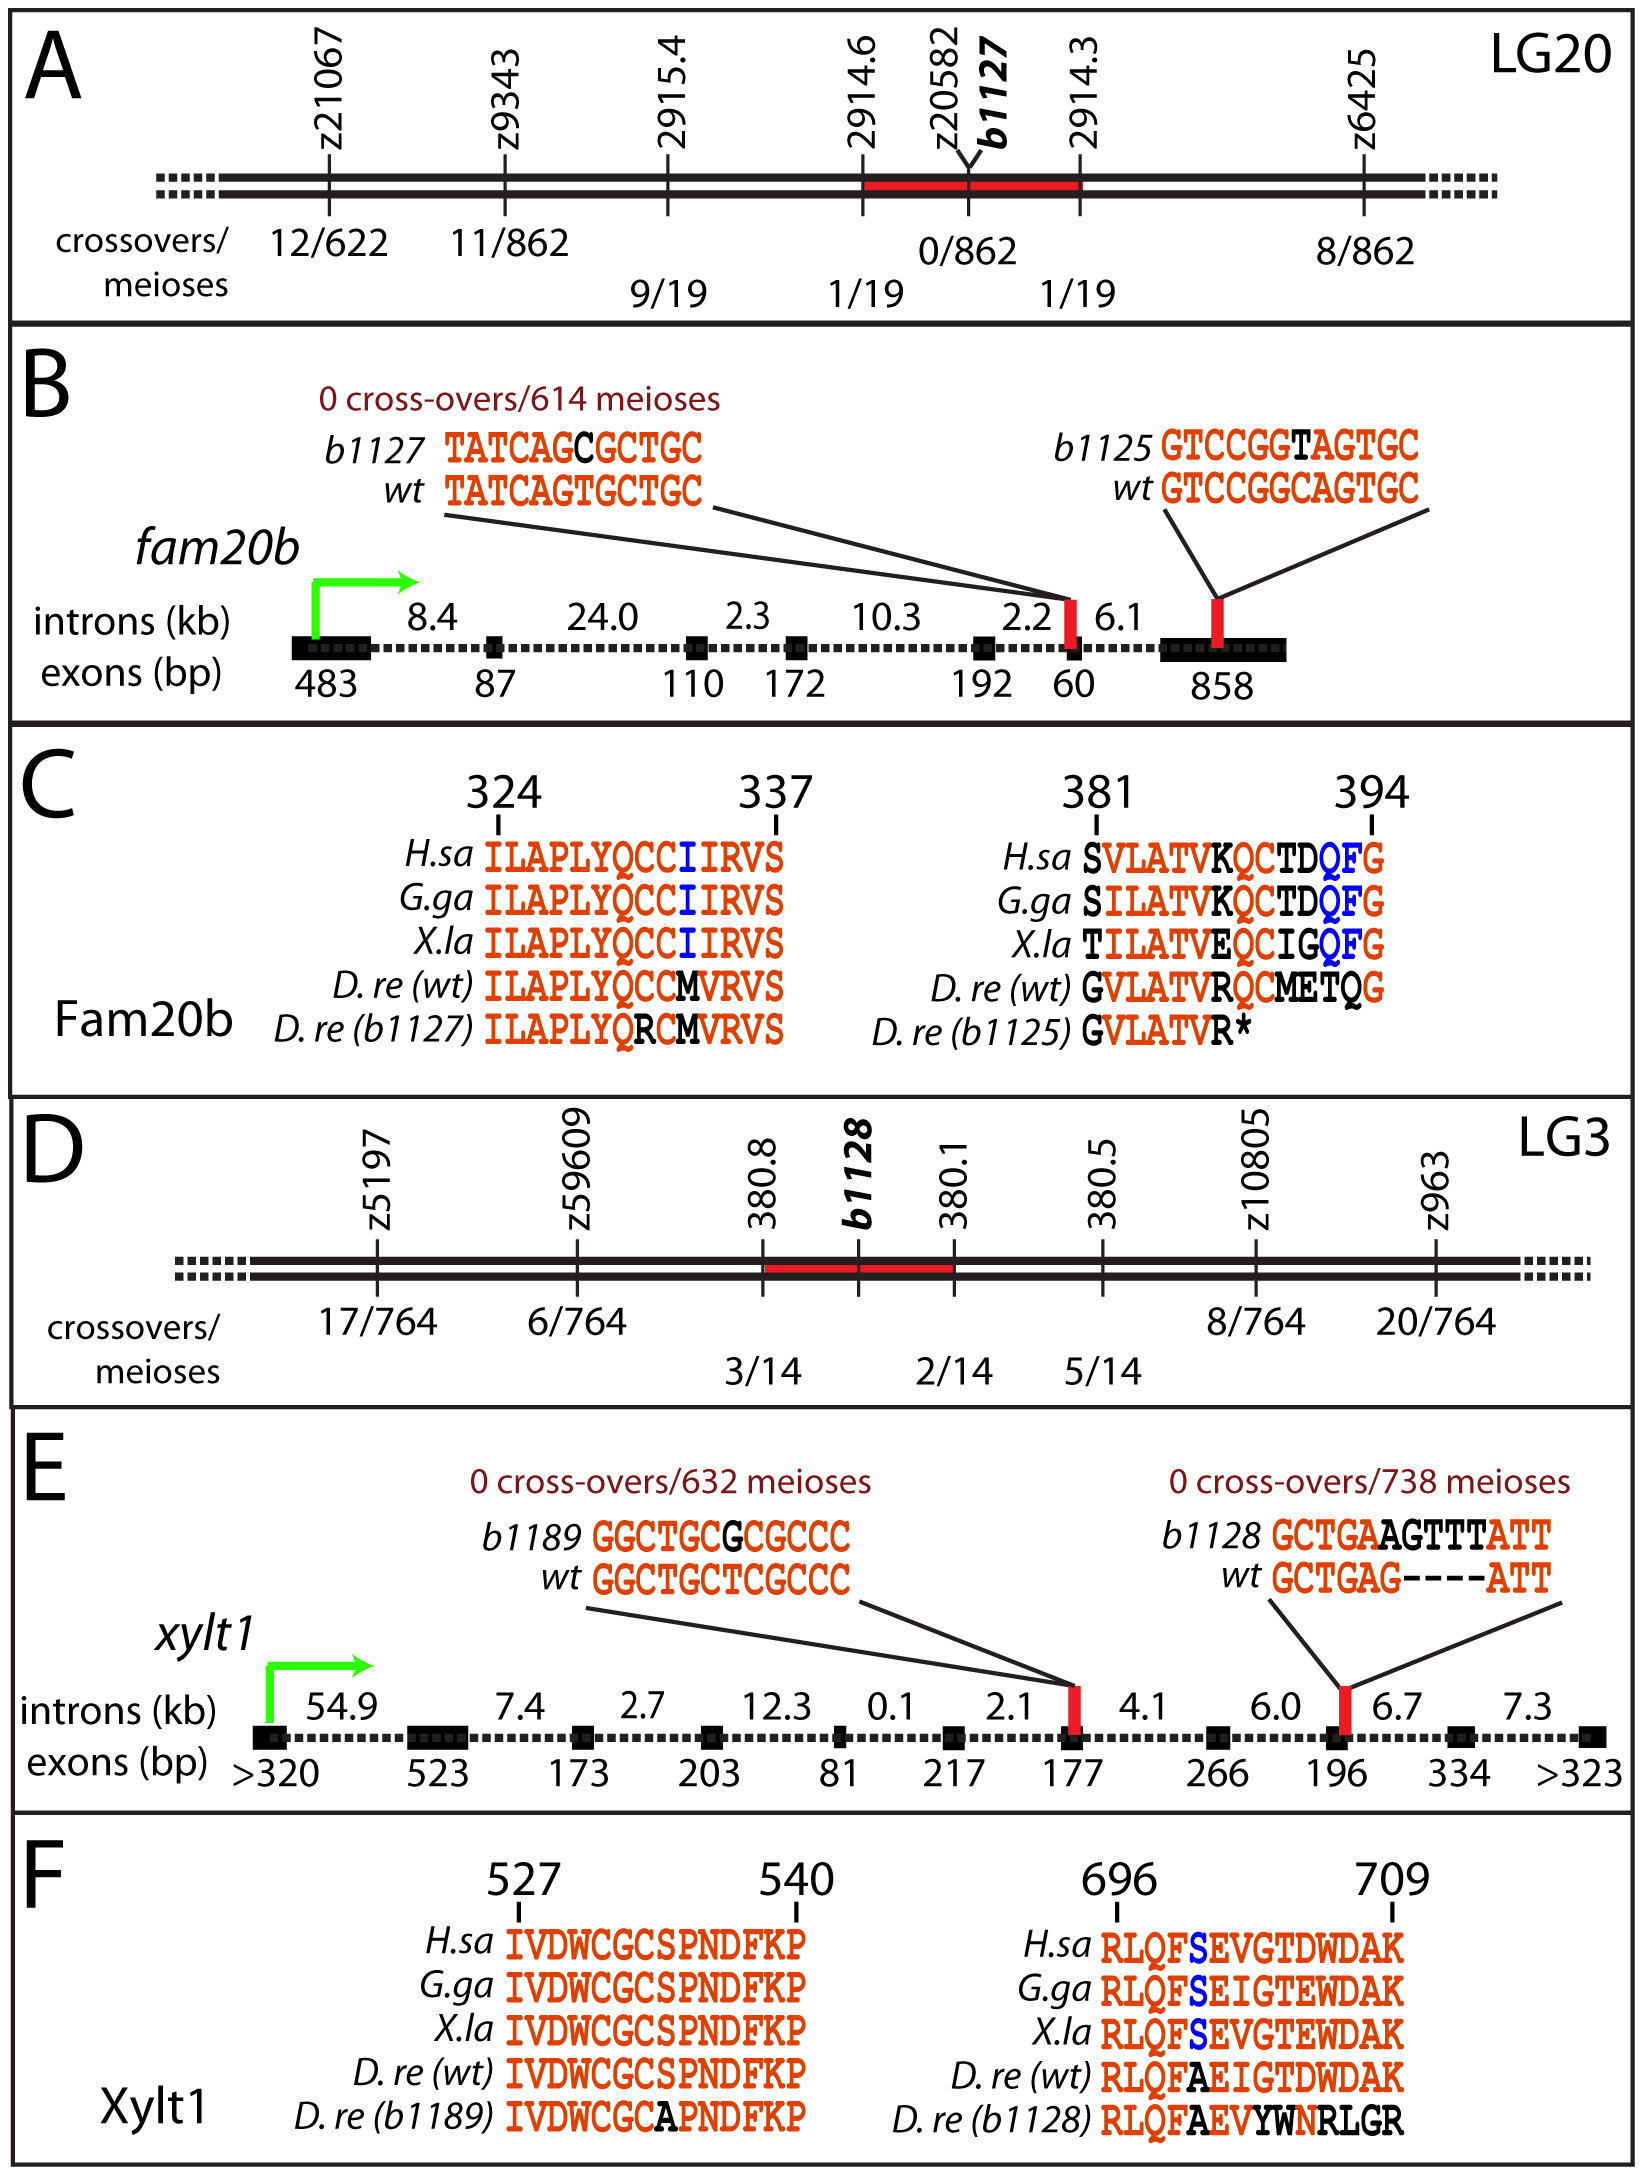 Mapping the mutants reveals lesions in <i>fam20b</i> and <i>xylt1</i>.